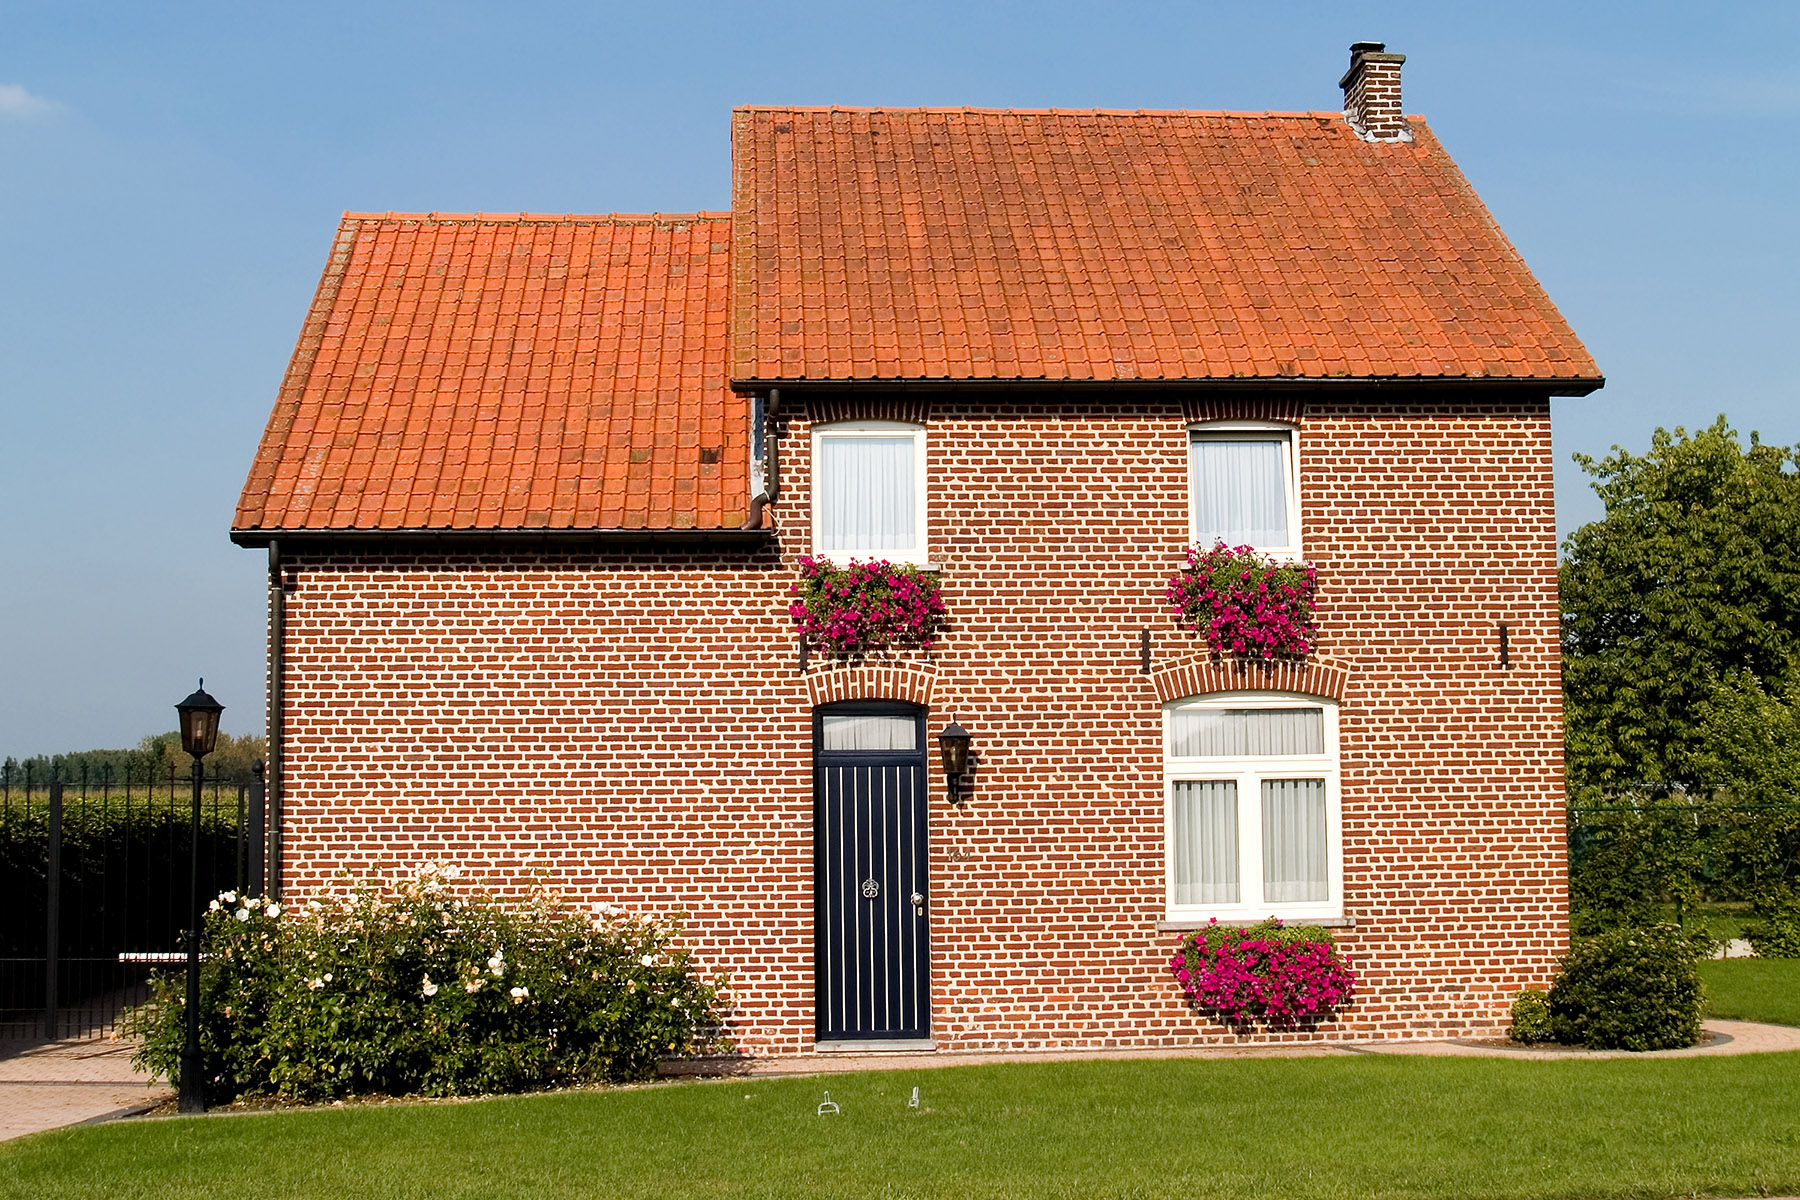 A typical suburban house in Belgium